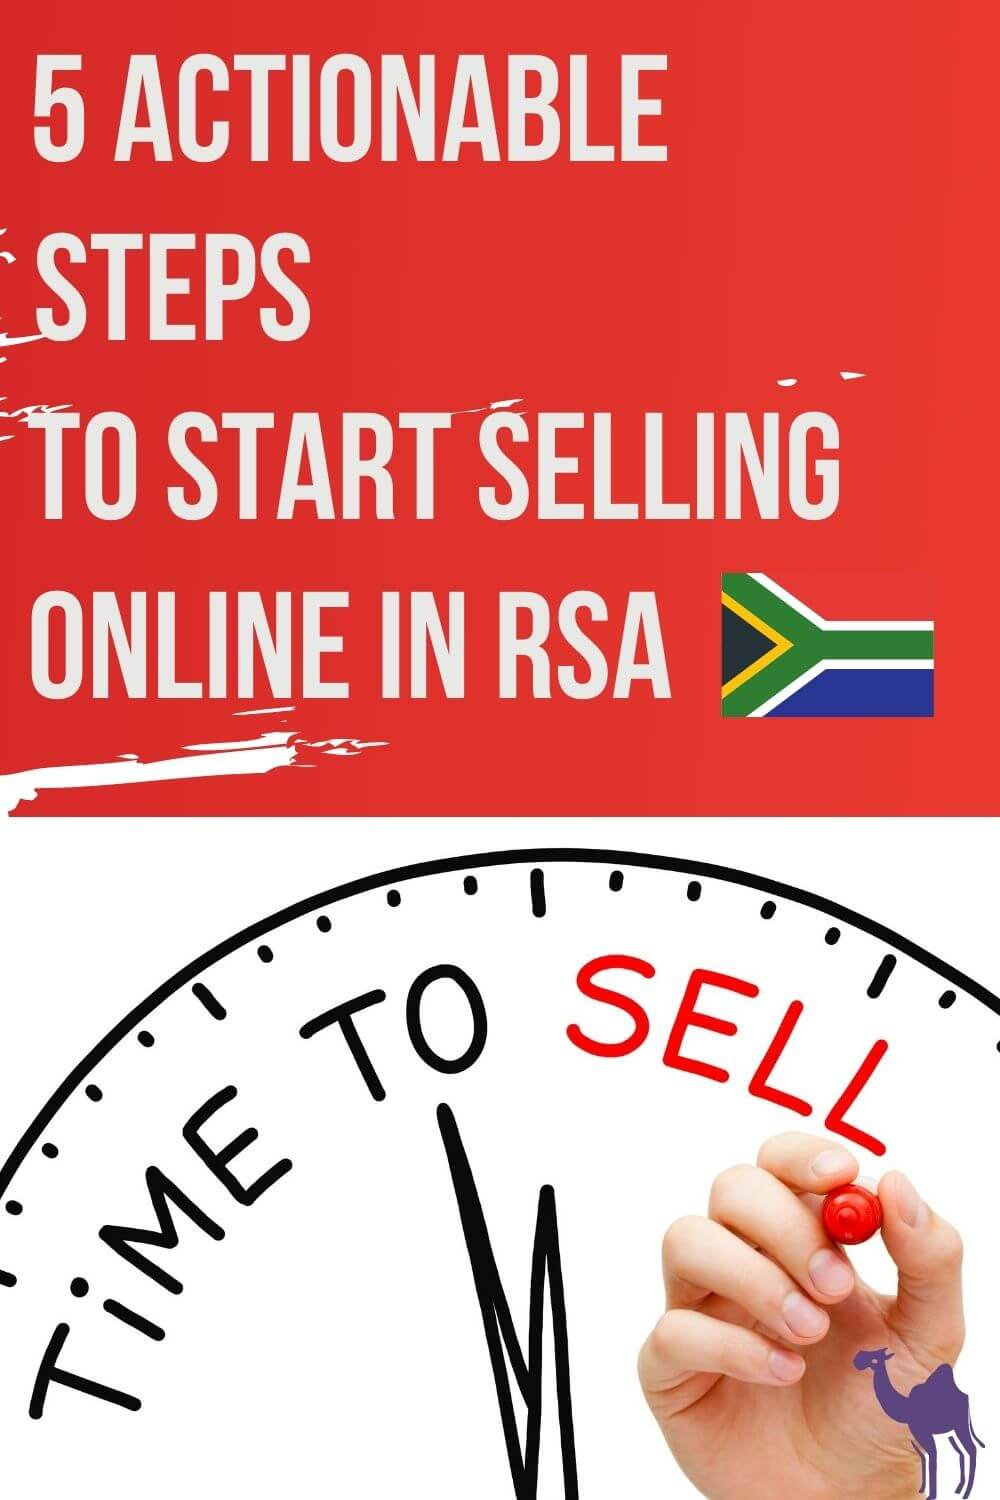 How to start an online store in South Africa